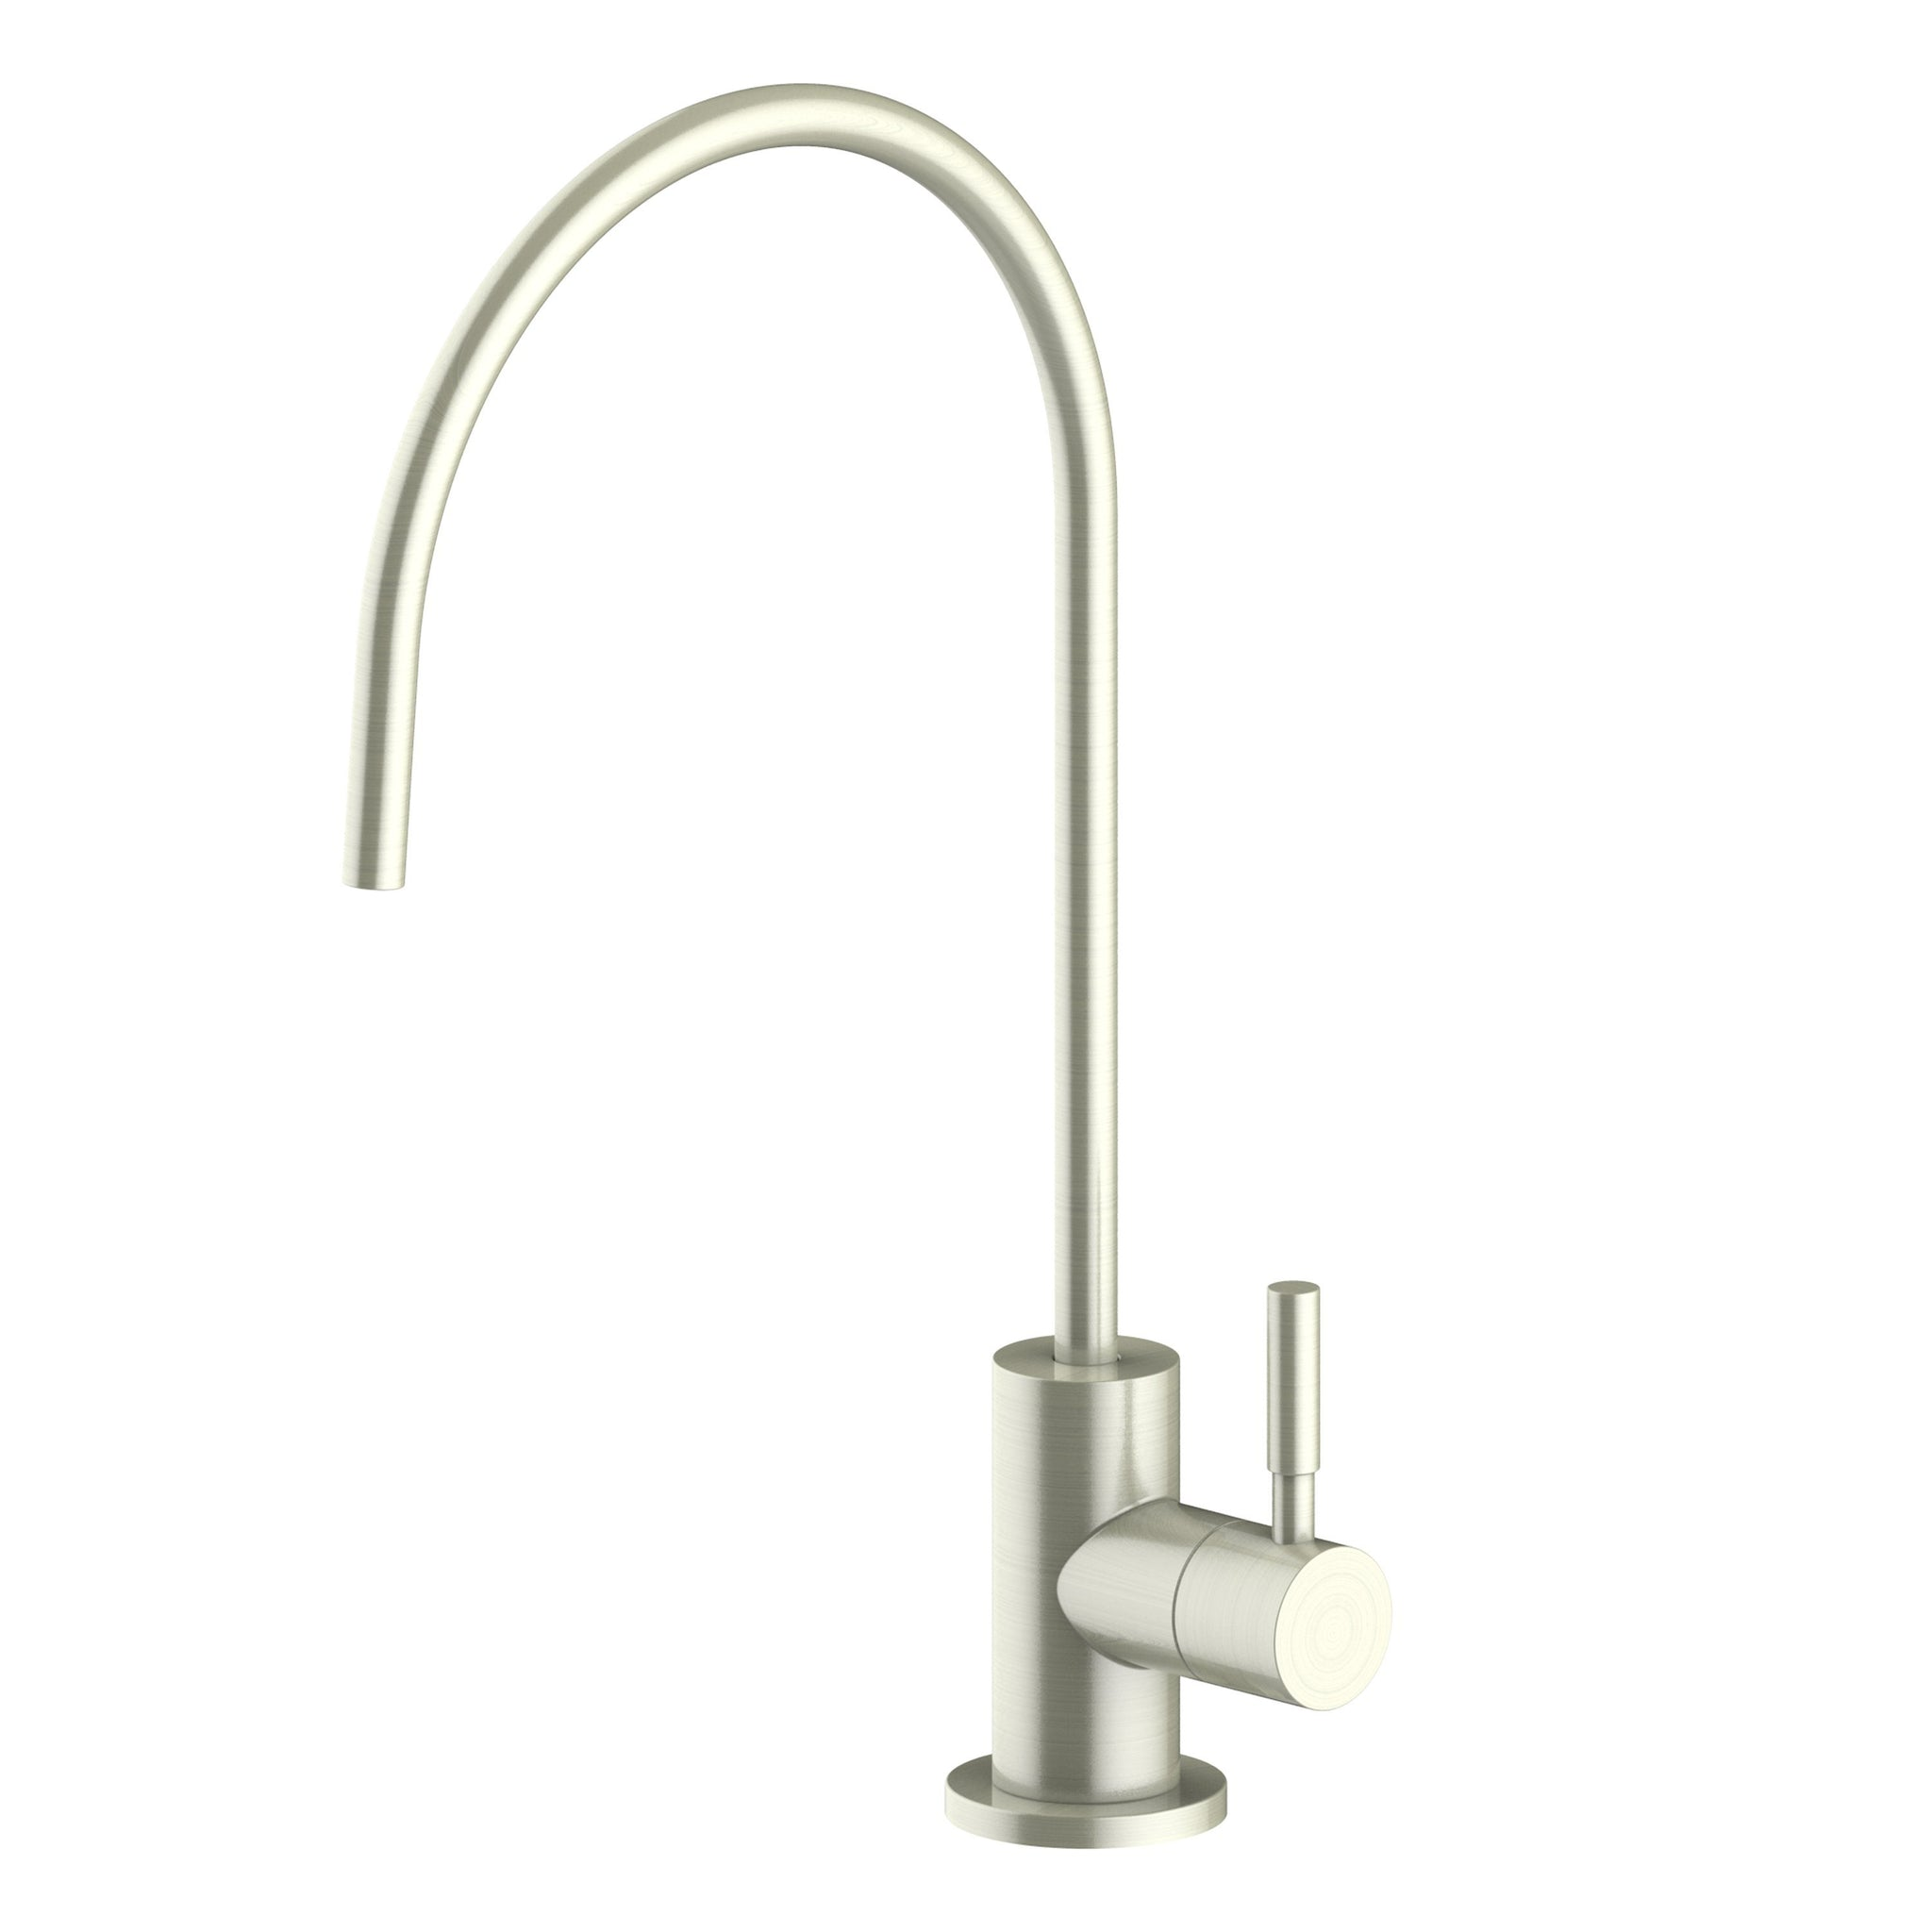 ZLINE Drink Faucet with Color Options (FBV)